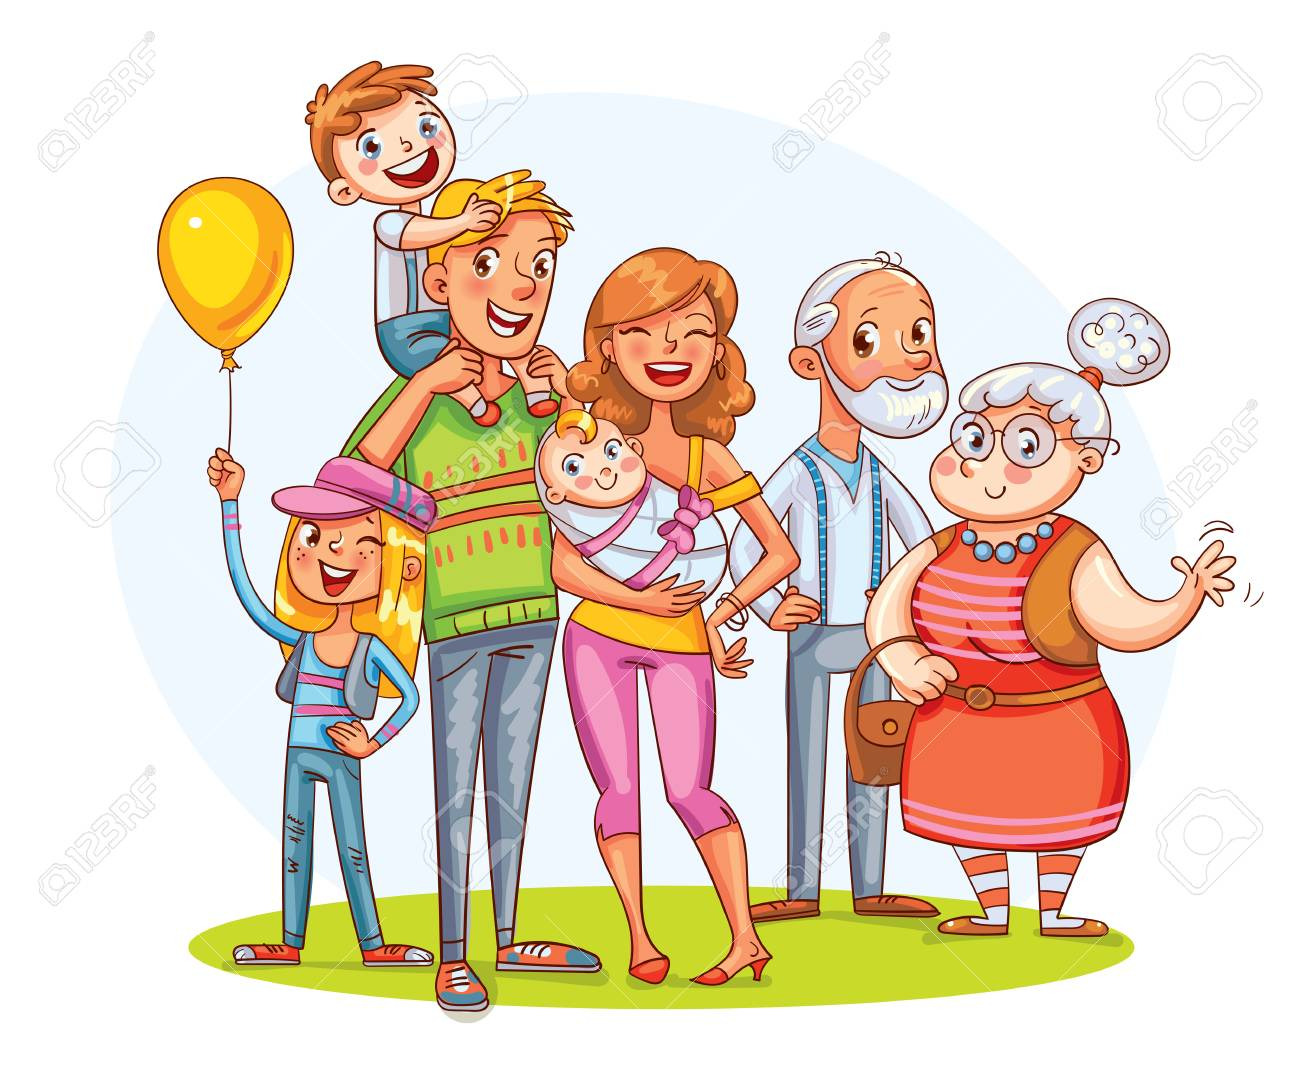 My big family together. Family portrait (father, mother, daughter, son, grandparents). - 91757953